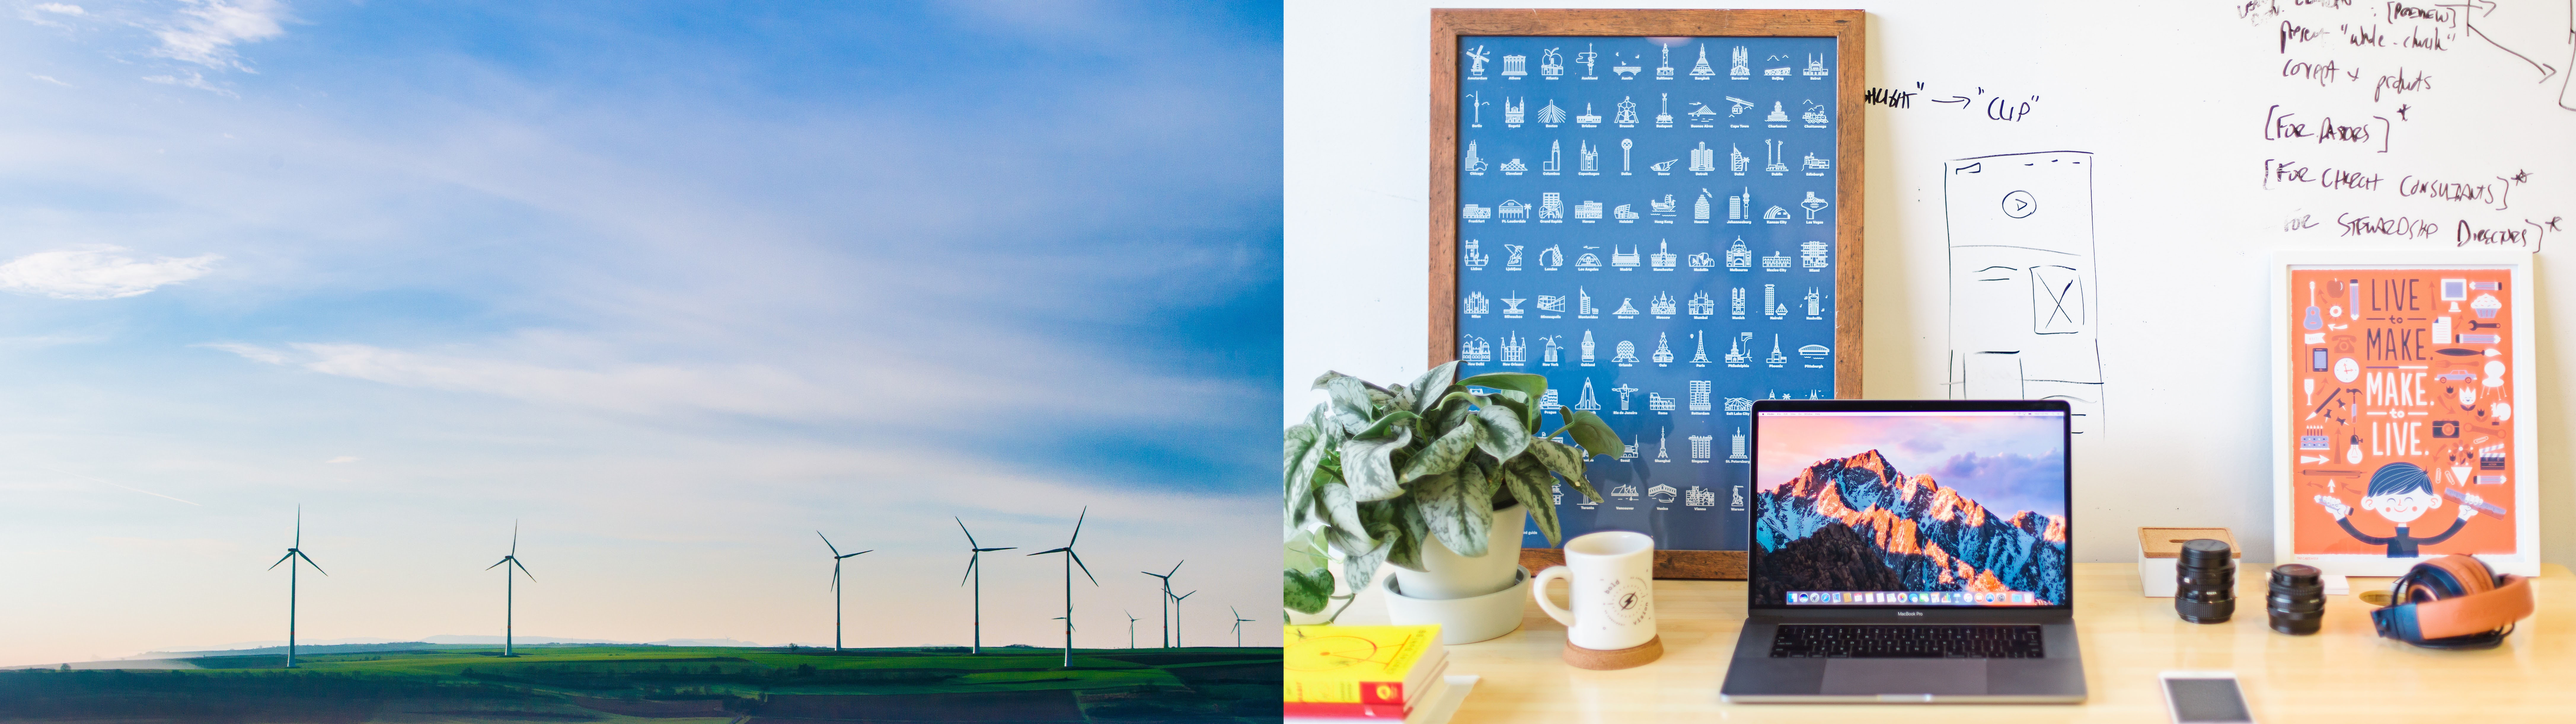 Image of windmills and a computer desk